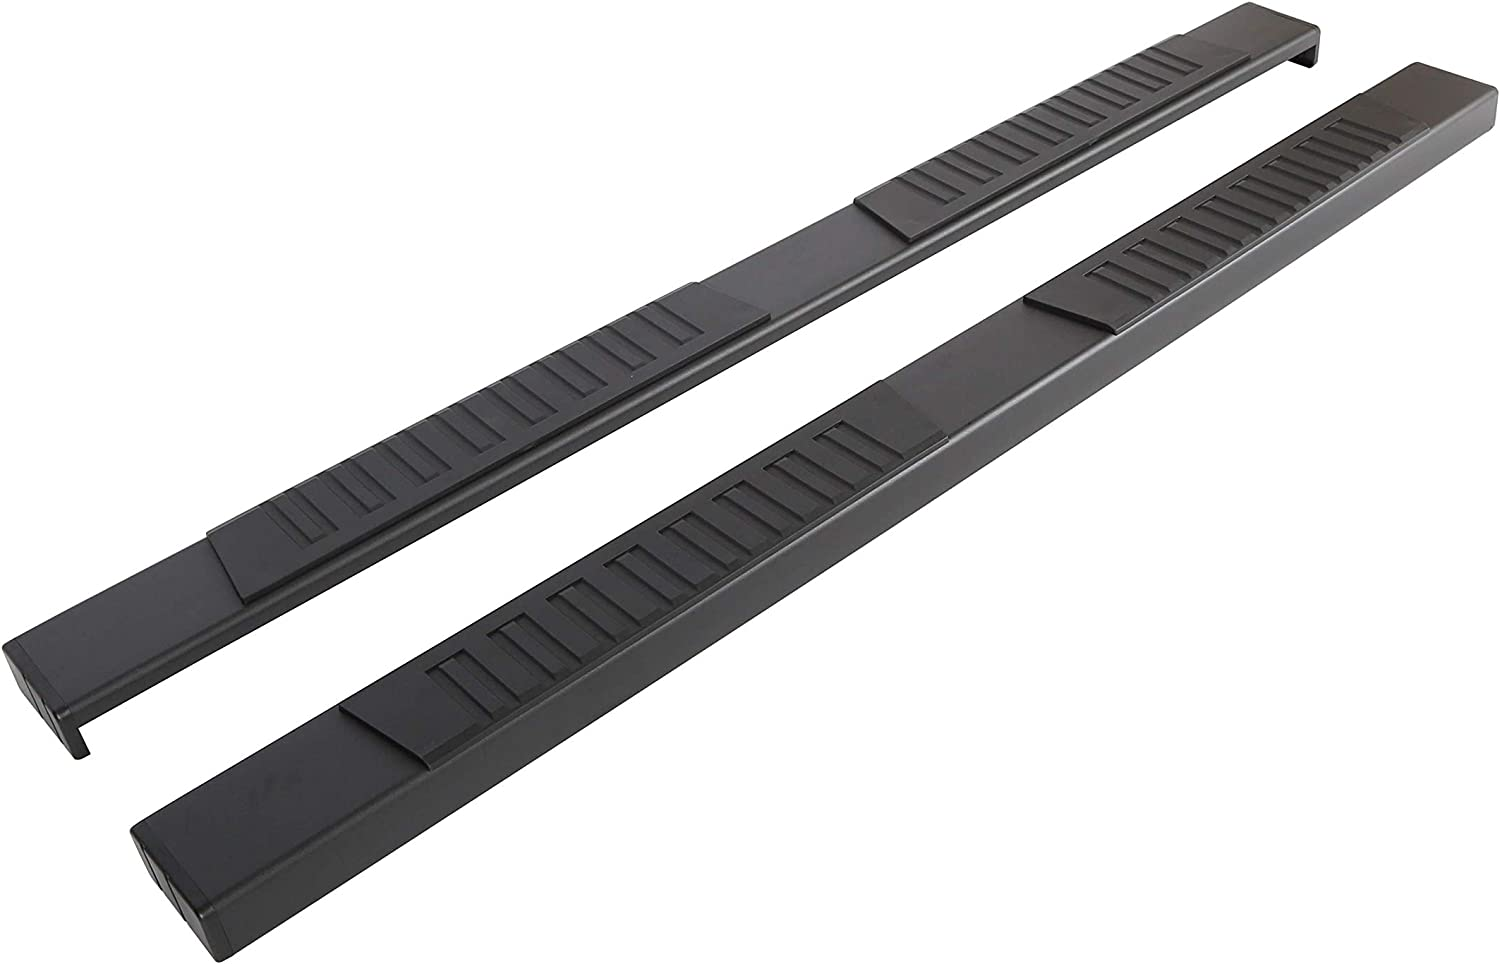 2020 Chevy Silverado//Gmc Sierra 2500//3500HD Crew Cab Side Step Nerf Bar Ziruiautopart 6 inch Black Aluminum Running Boards Compatible for 2019-2020 Chevy Silverado//Gmc Sierra 1500